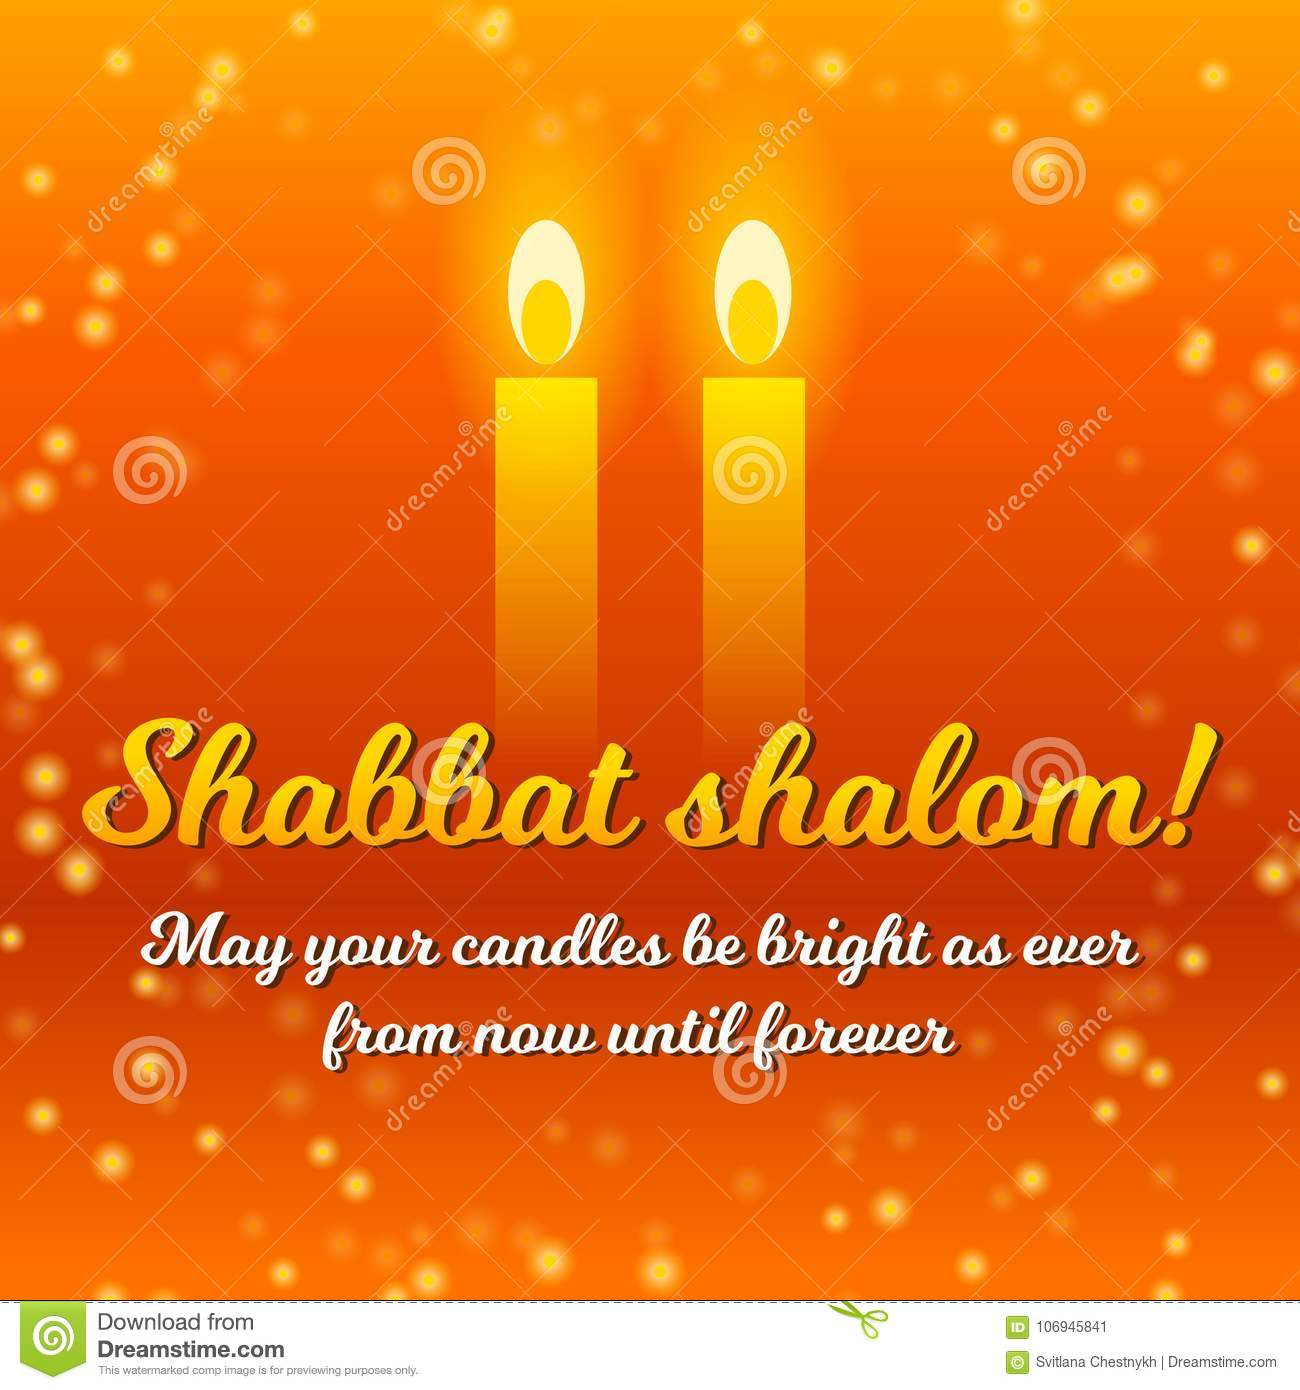 Shabbat shalom two candles greeting card lettering stock vector shabbat shalom two candles greeting card lettering m4hsunfo